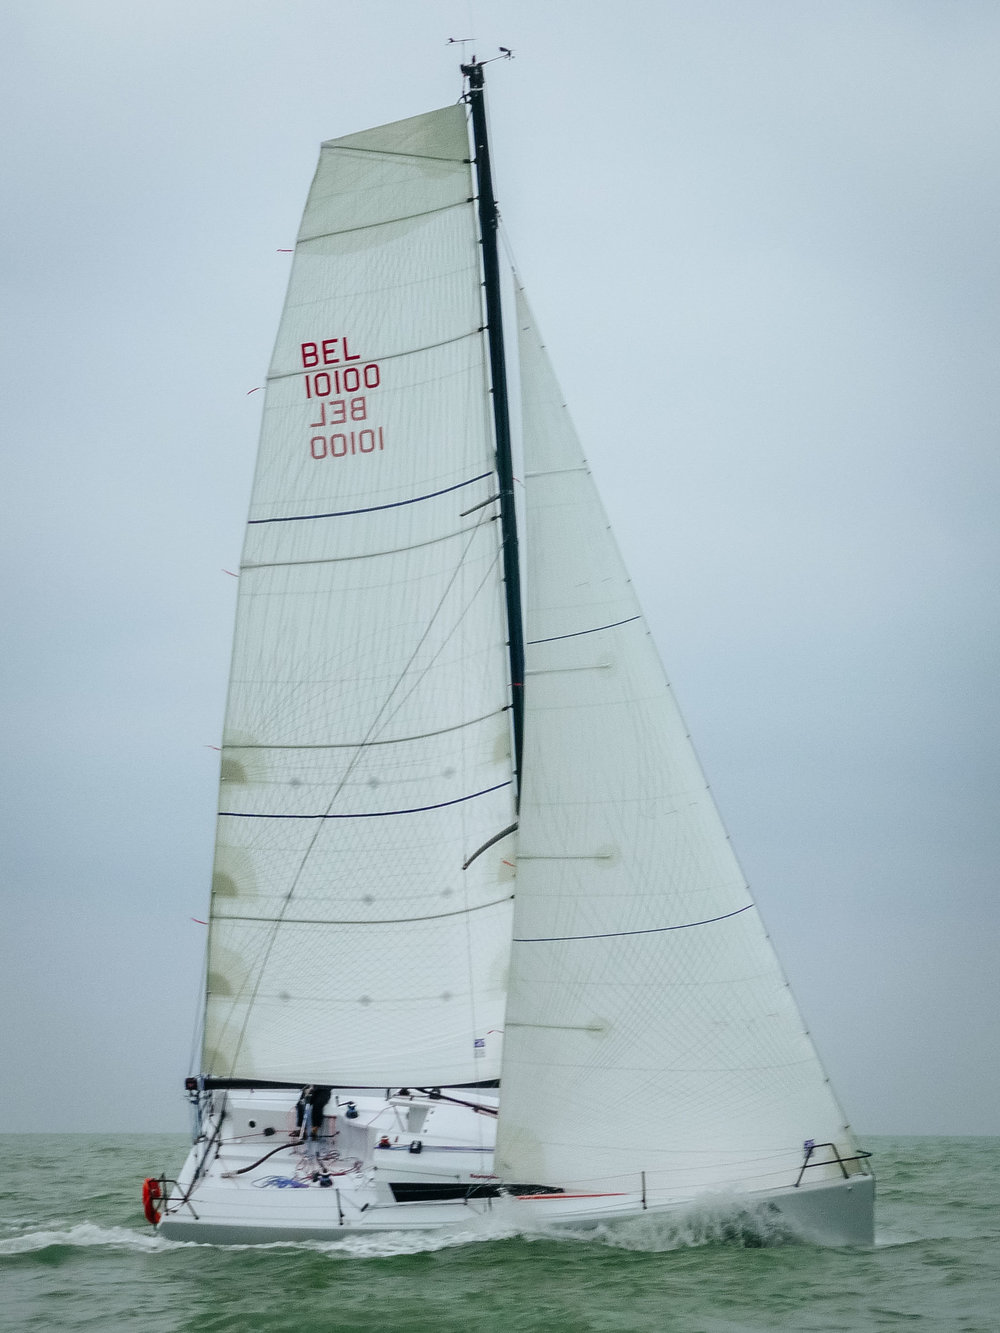 Tape-Drive Silver Powerhead mainsail and non-overlapping jib.